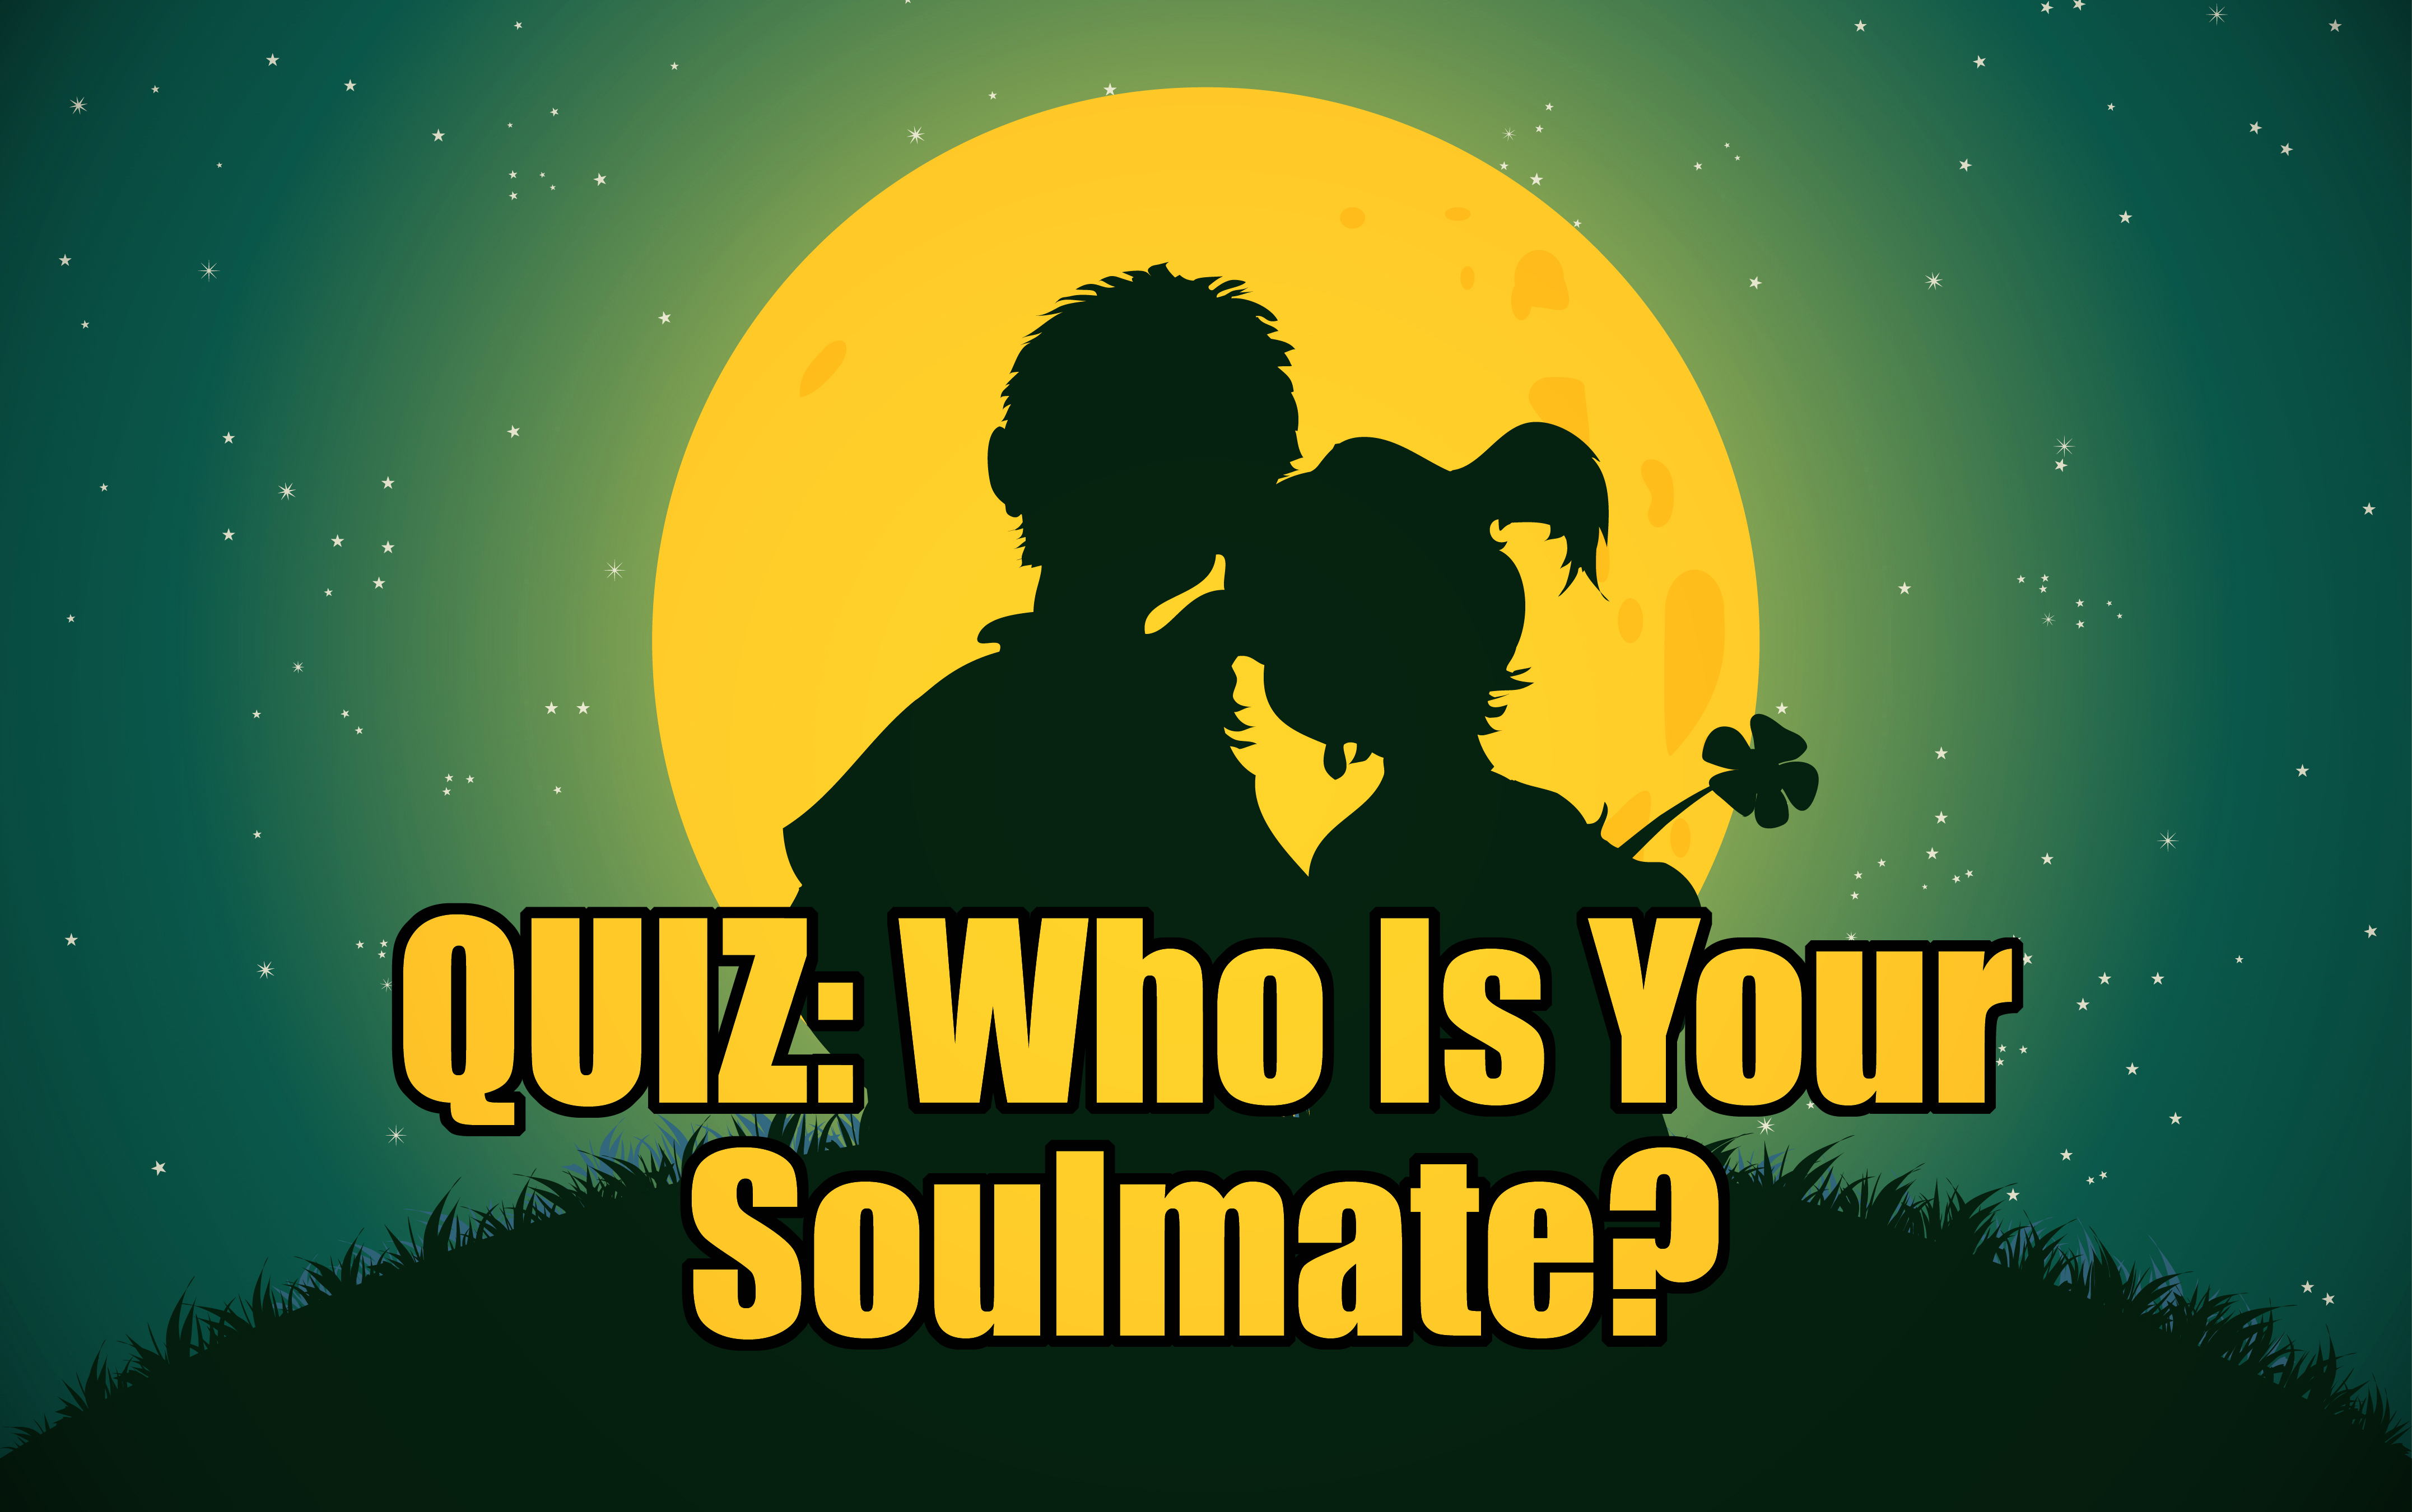 Quiz: Who Is Your Soulmate? - Newegy | 4306 x 2700 jpeg 1792kB